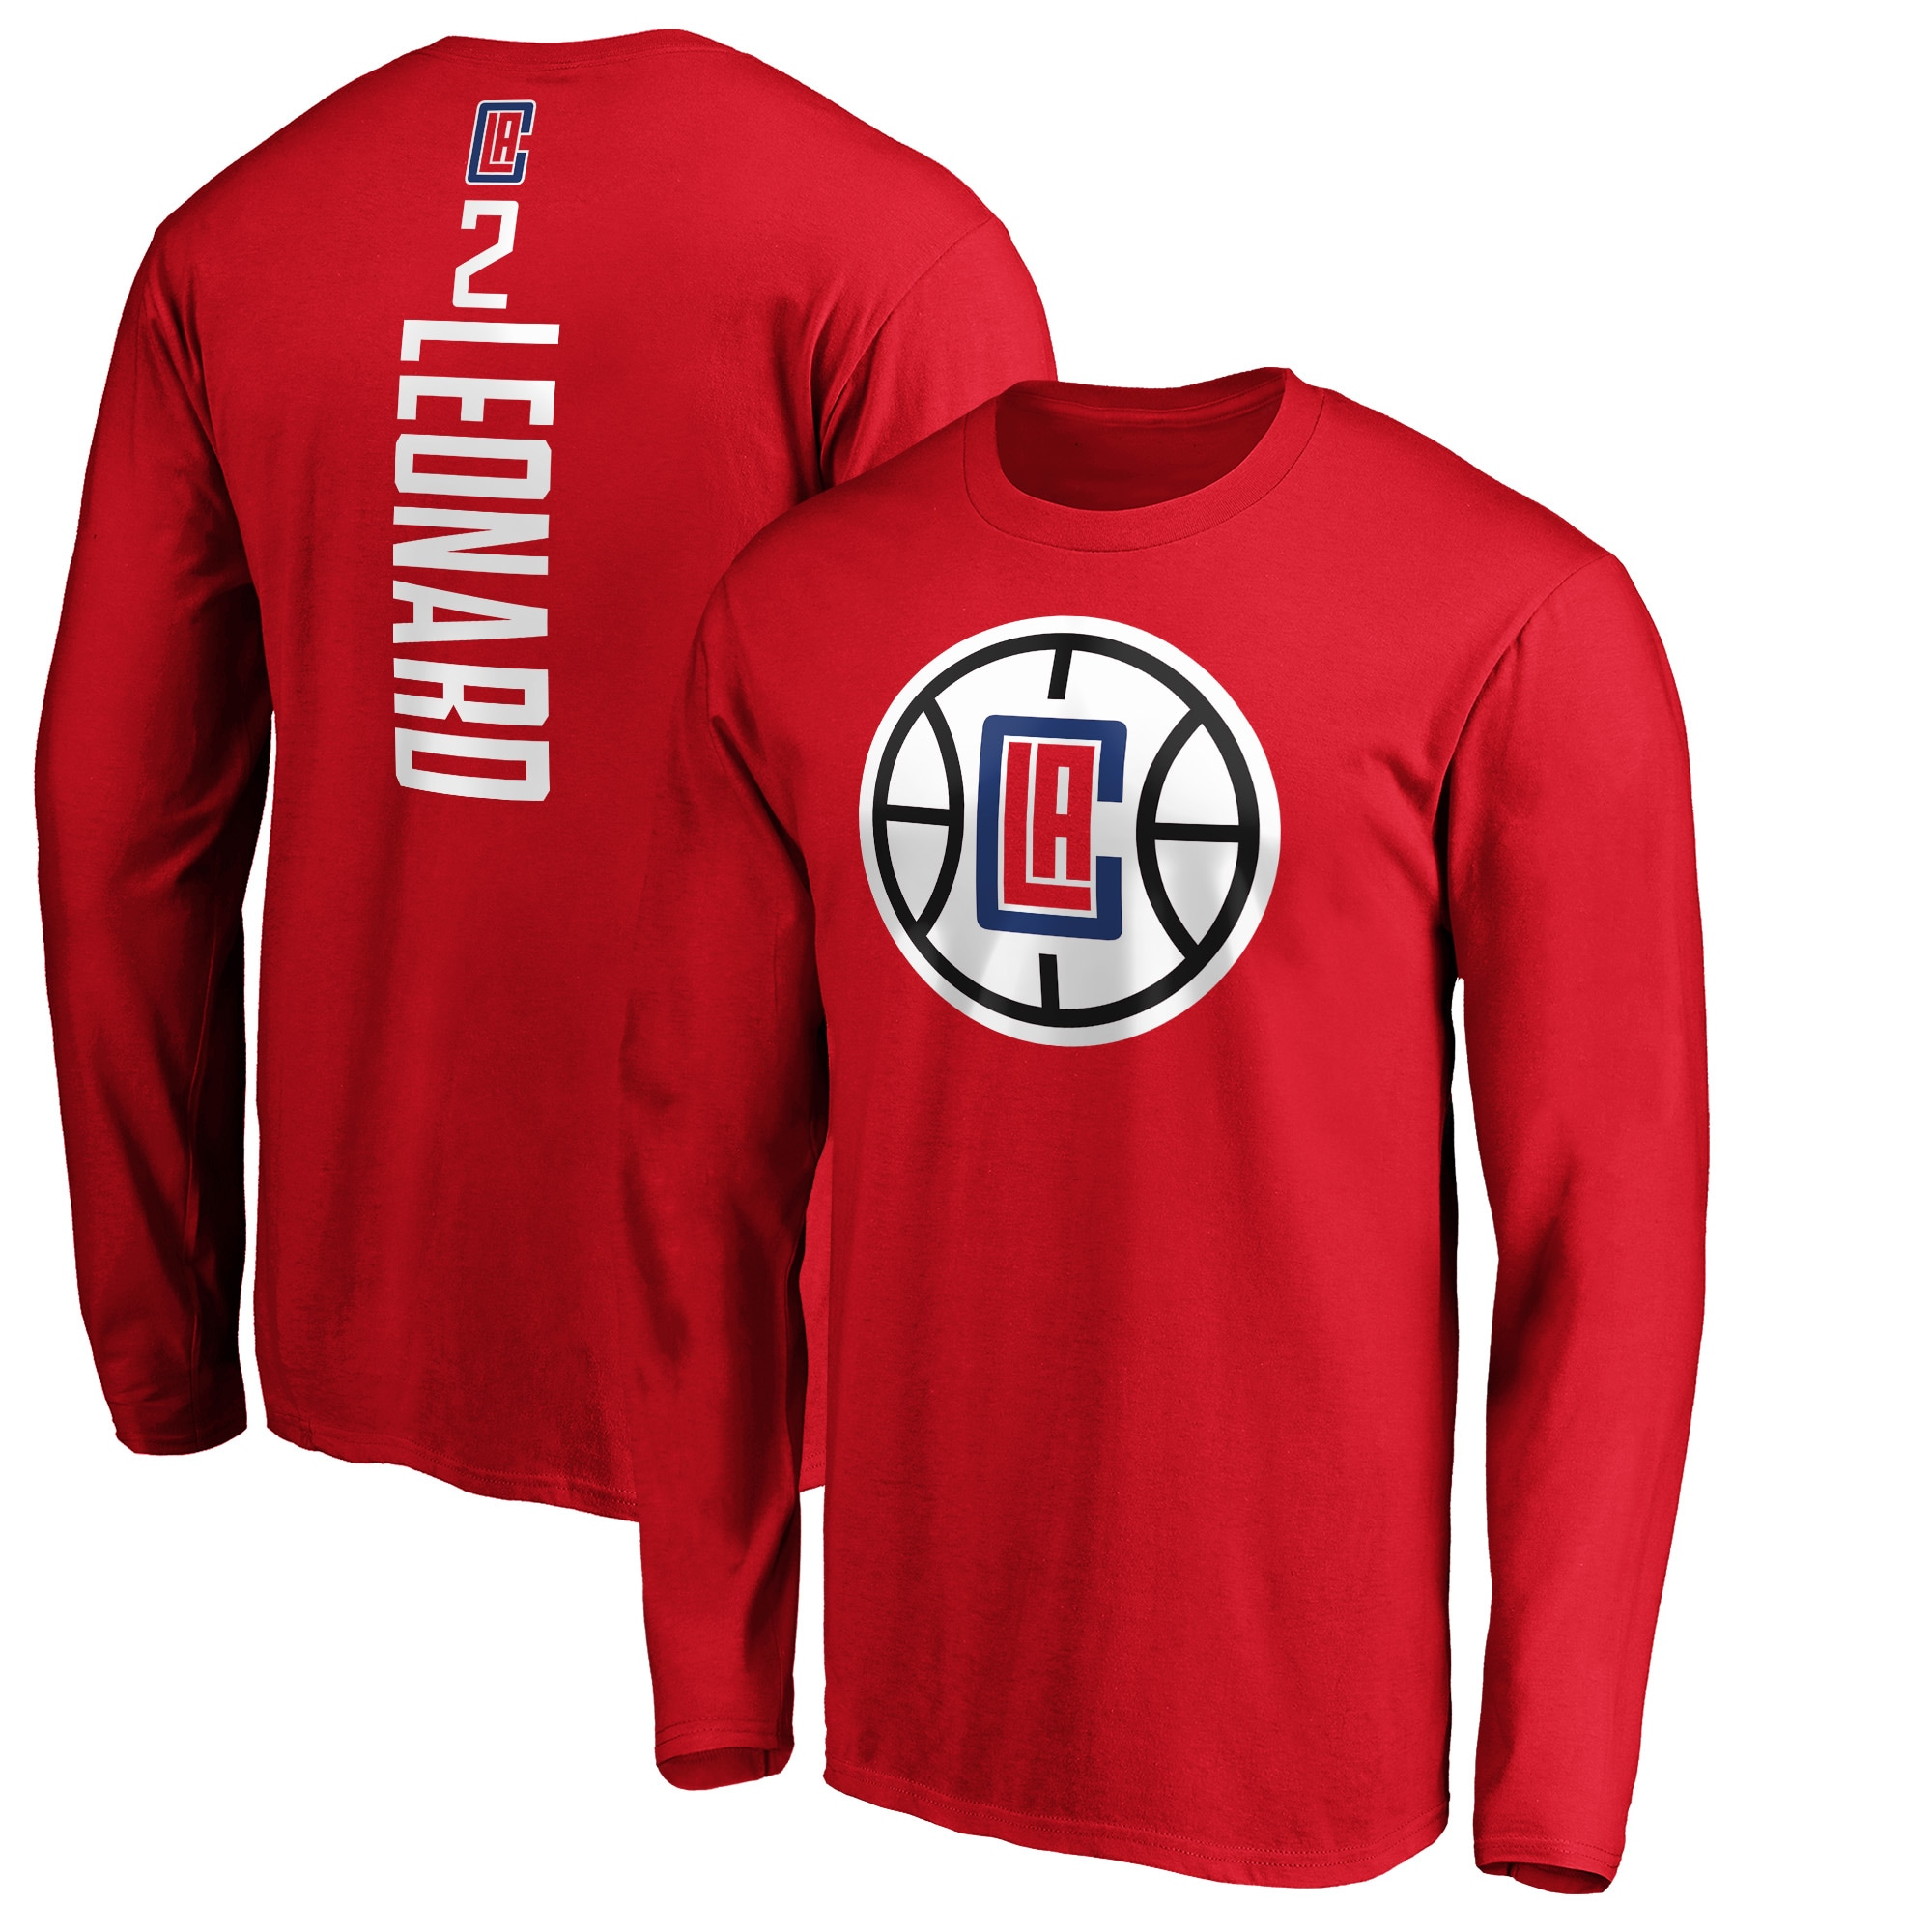 Kawhi Leonard LA Clippers Fanatics Branded Big & Tall Playmaker Name & Number Long Sleeve T-Shirt - Red